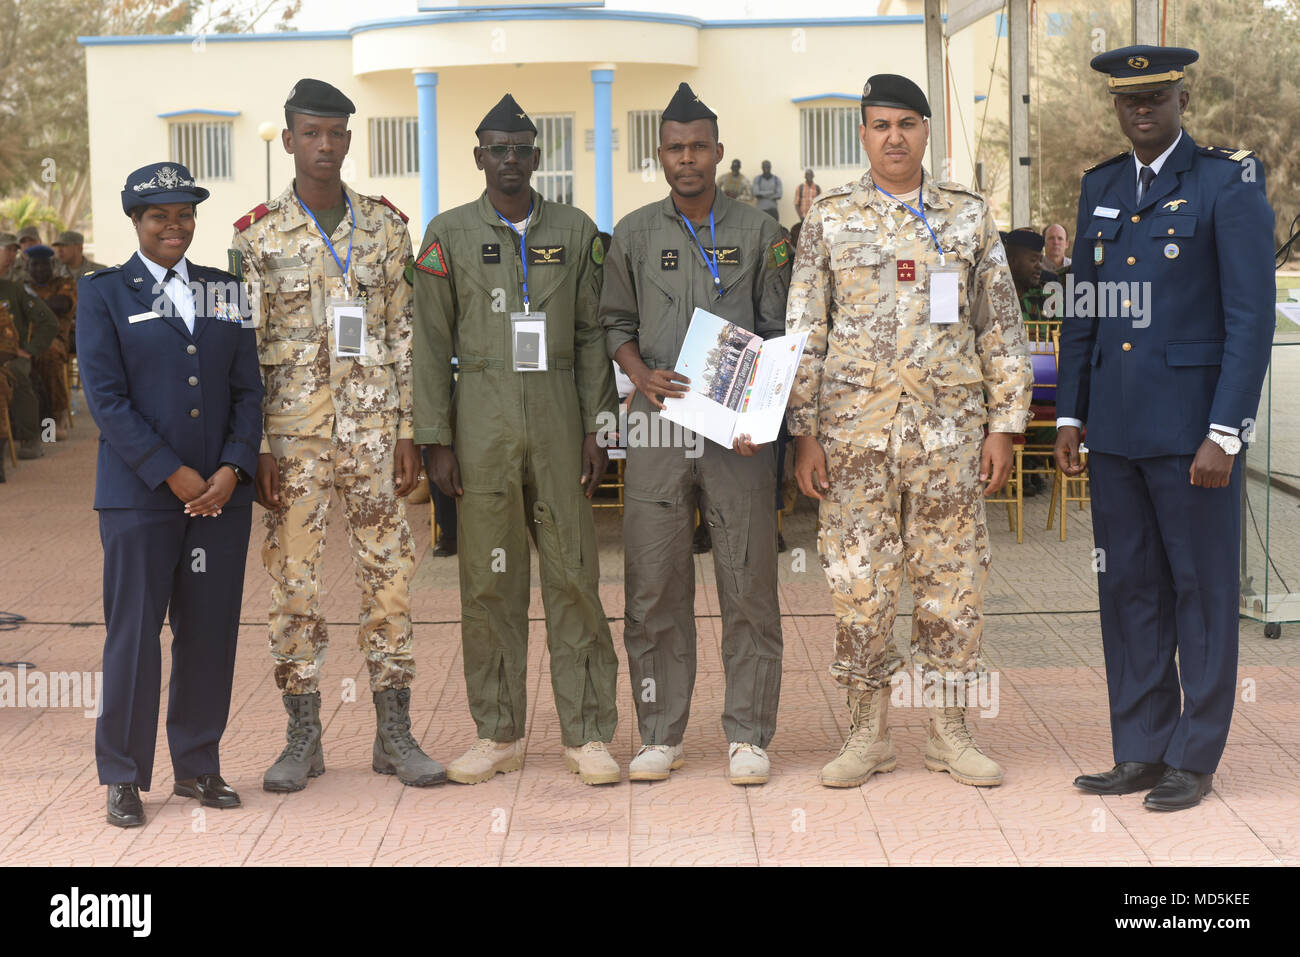 African Partnership Flight participants from Mauritania pose for a photo after the closing ceremony for APF at Captain Andalla Cissé Air Base, Senegal, March 23, 2018. The purpose of APF Senegal is to conduct multilateral, military-to-military engagements and security assistance with African air forces. (U.S. Air Force photo by Airman 1st Class Eli Chevalier)  (U.S. Air Force photo by Airman 1st Class Eli Chevalier) - Stock Image